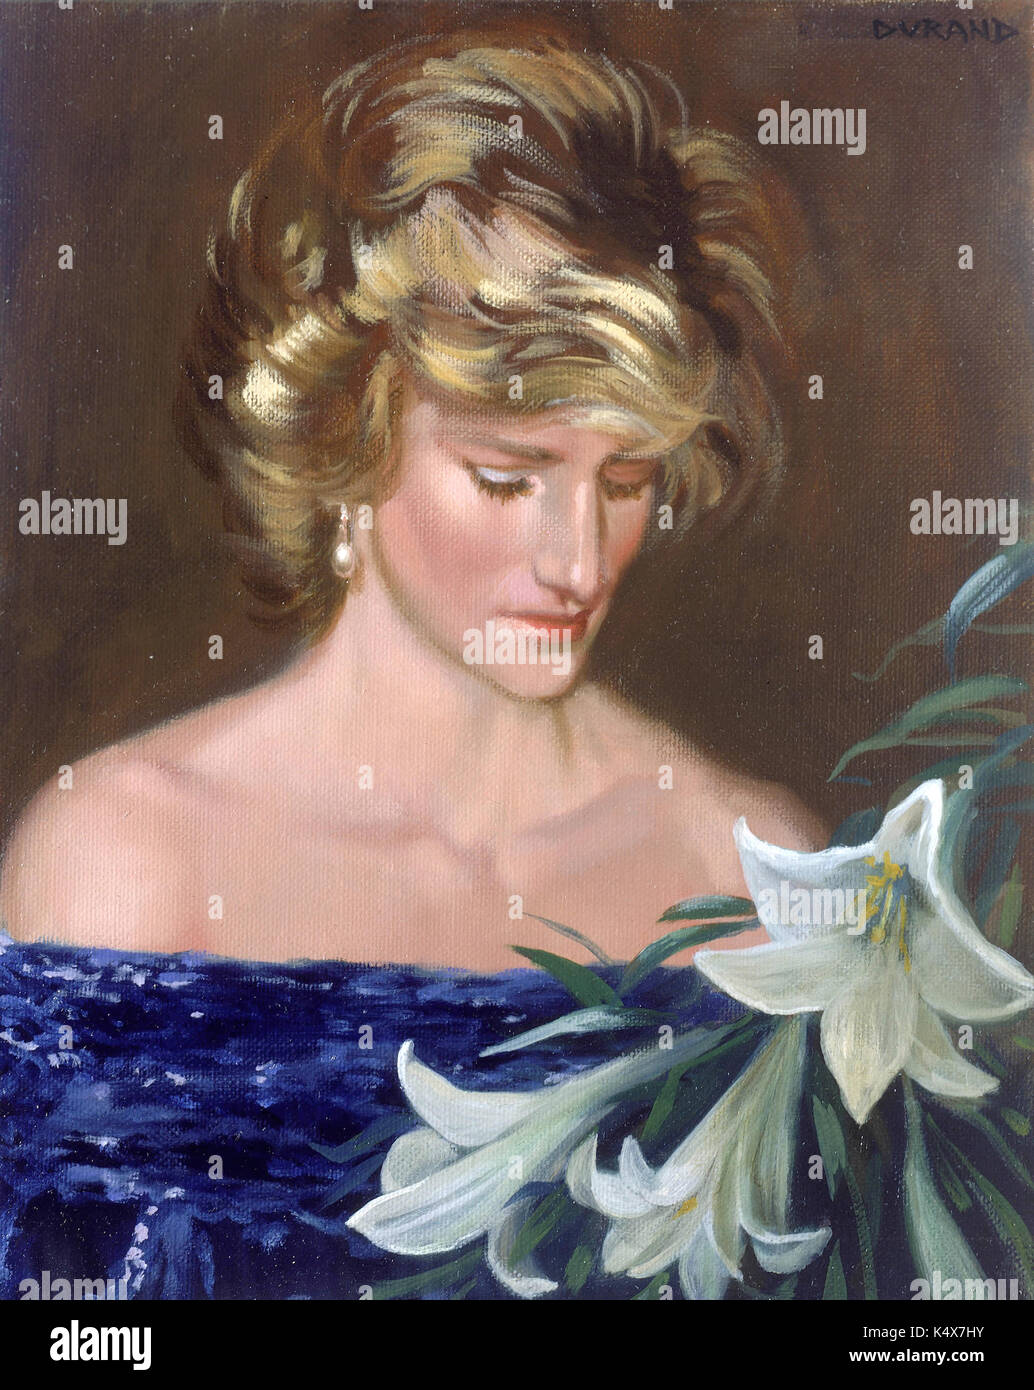 A Posthumous Portrait Of The Late Princess Diana Painted On Stock